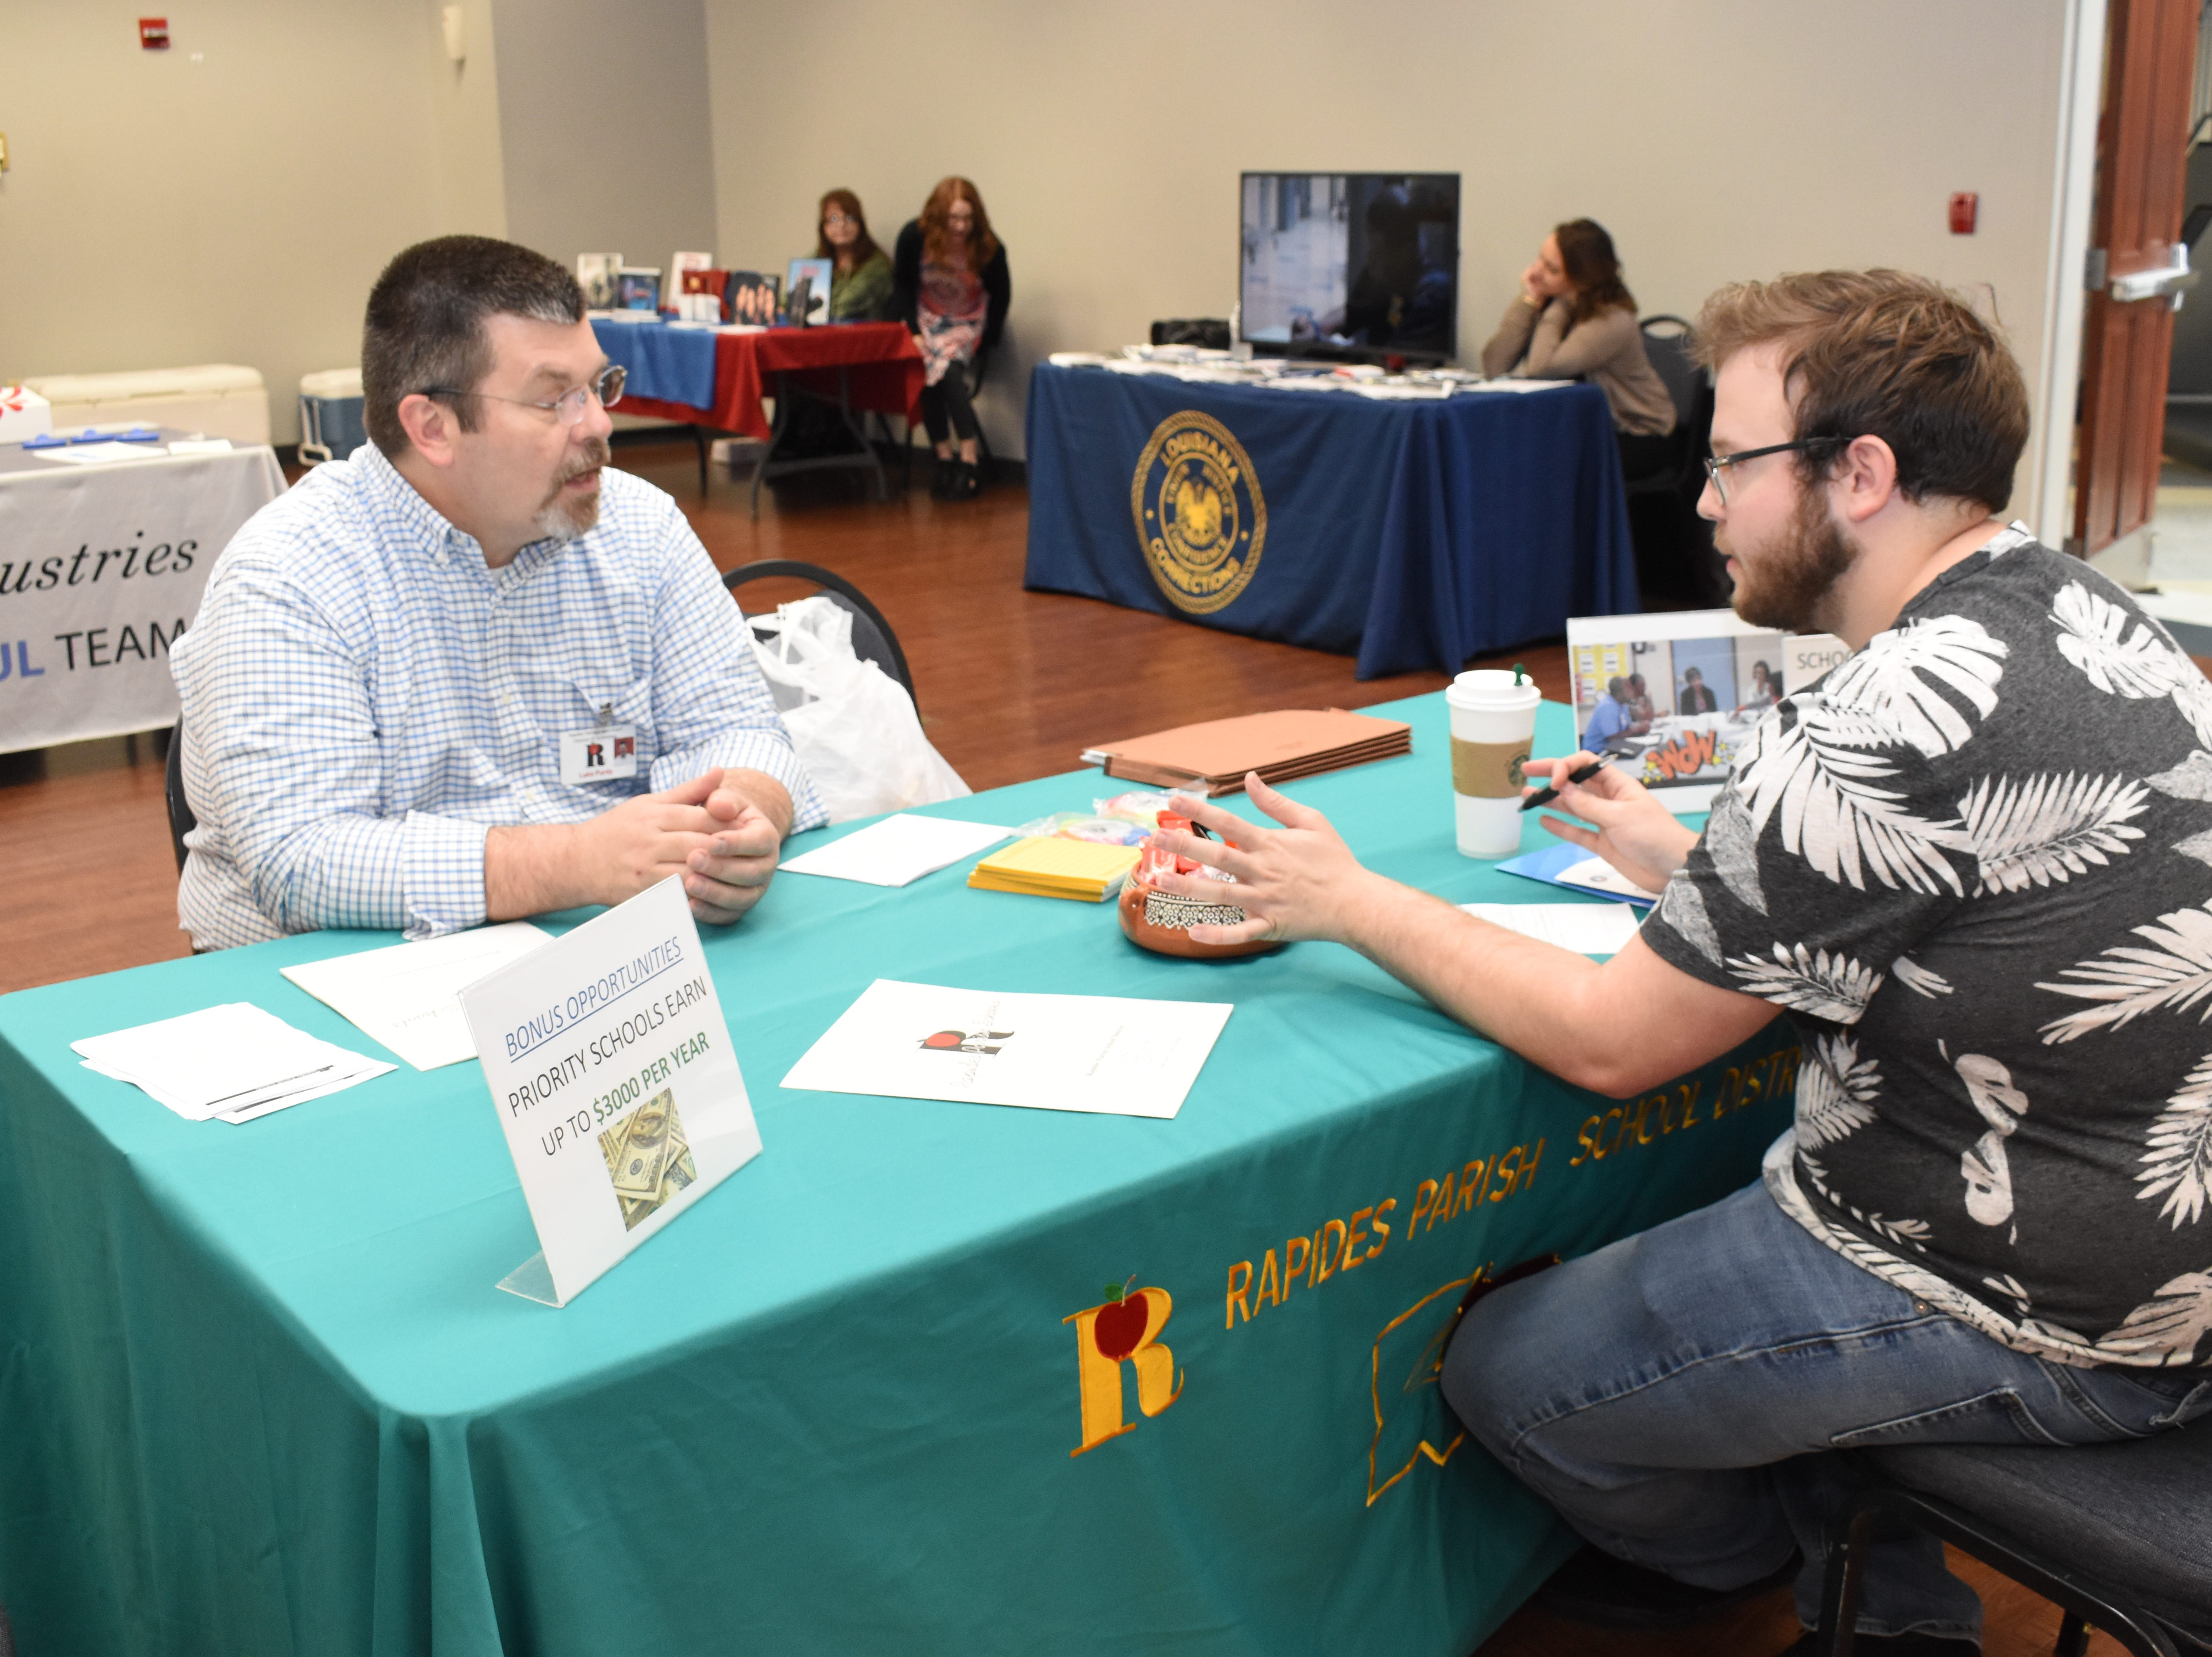 Luke Purdy (left), director of technology for the Rapides Parish School Board, talks with Louisiana College senior journalism major Brandon Murphy at a career fair held Thursday, March 14, 2019 at Louisiana College. About 34 area businesses participated in the fair. Those included law enforcement, education, health care and retail.